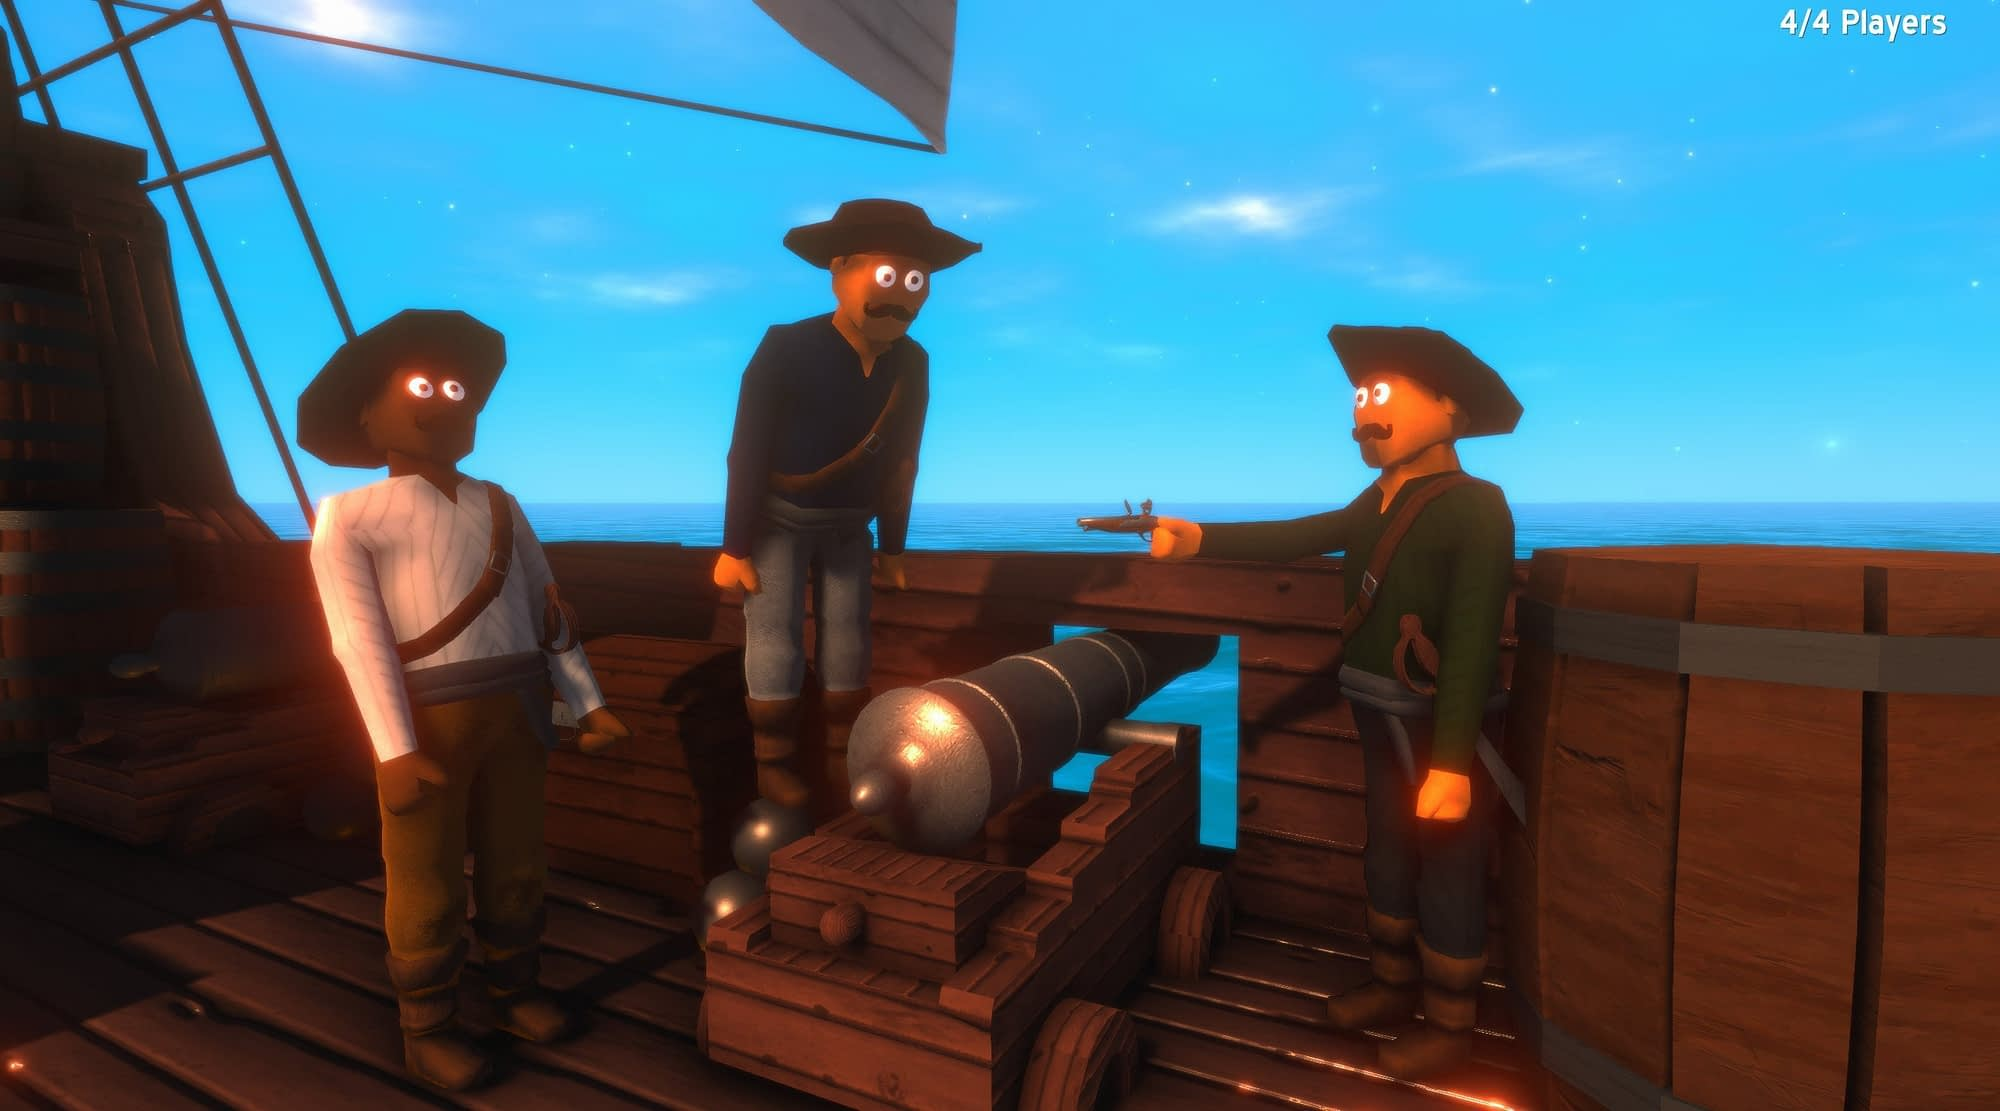 Games on Steam: Stowaway